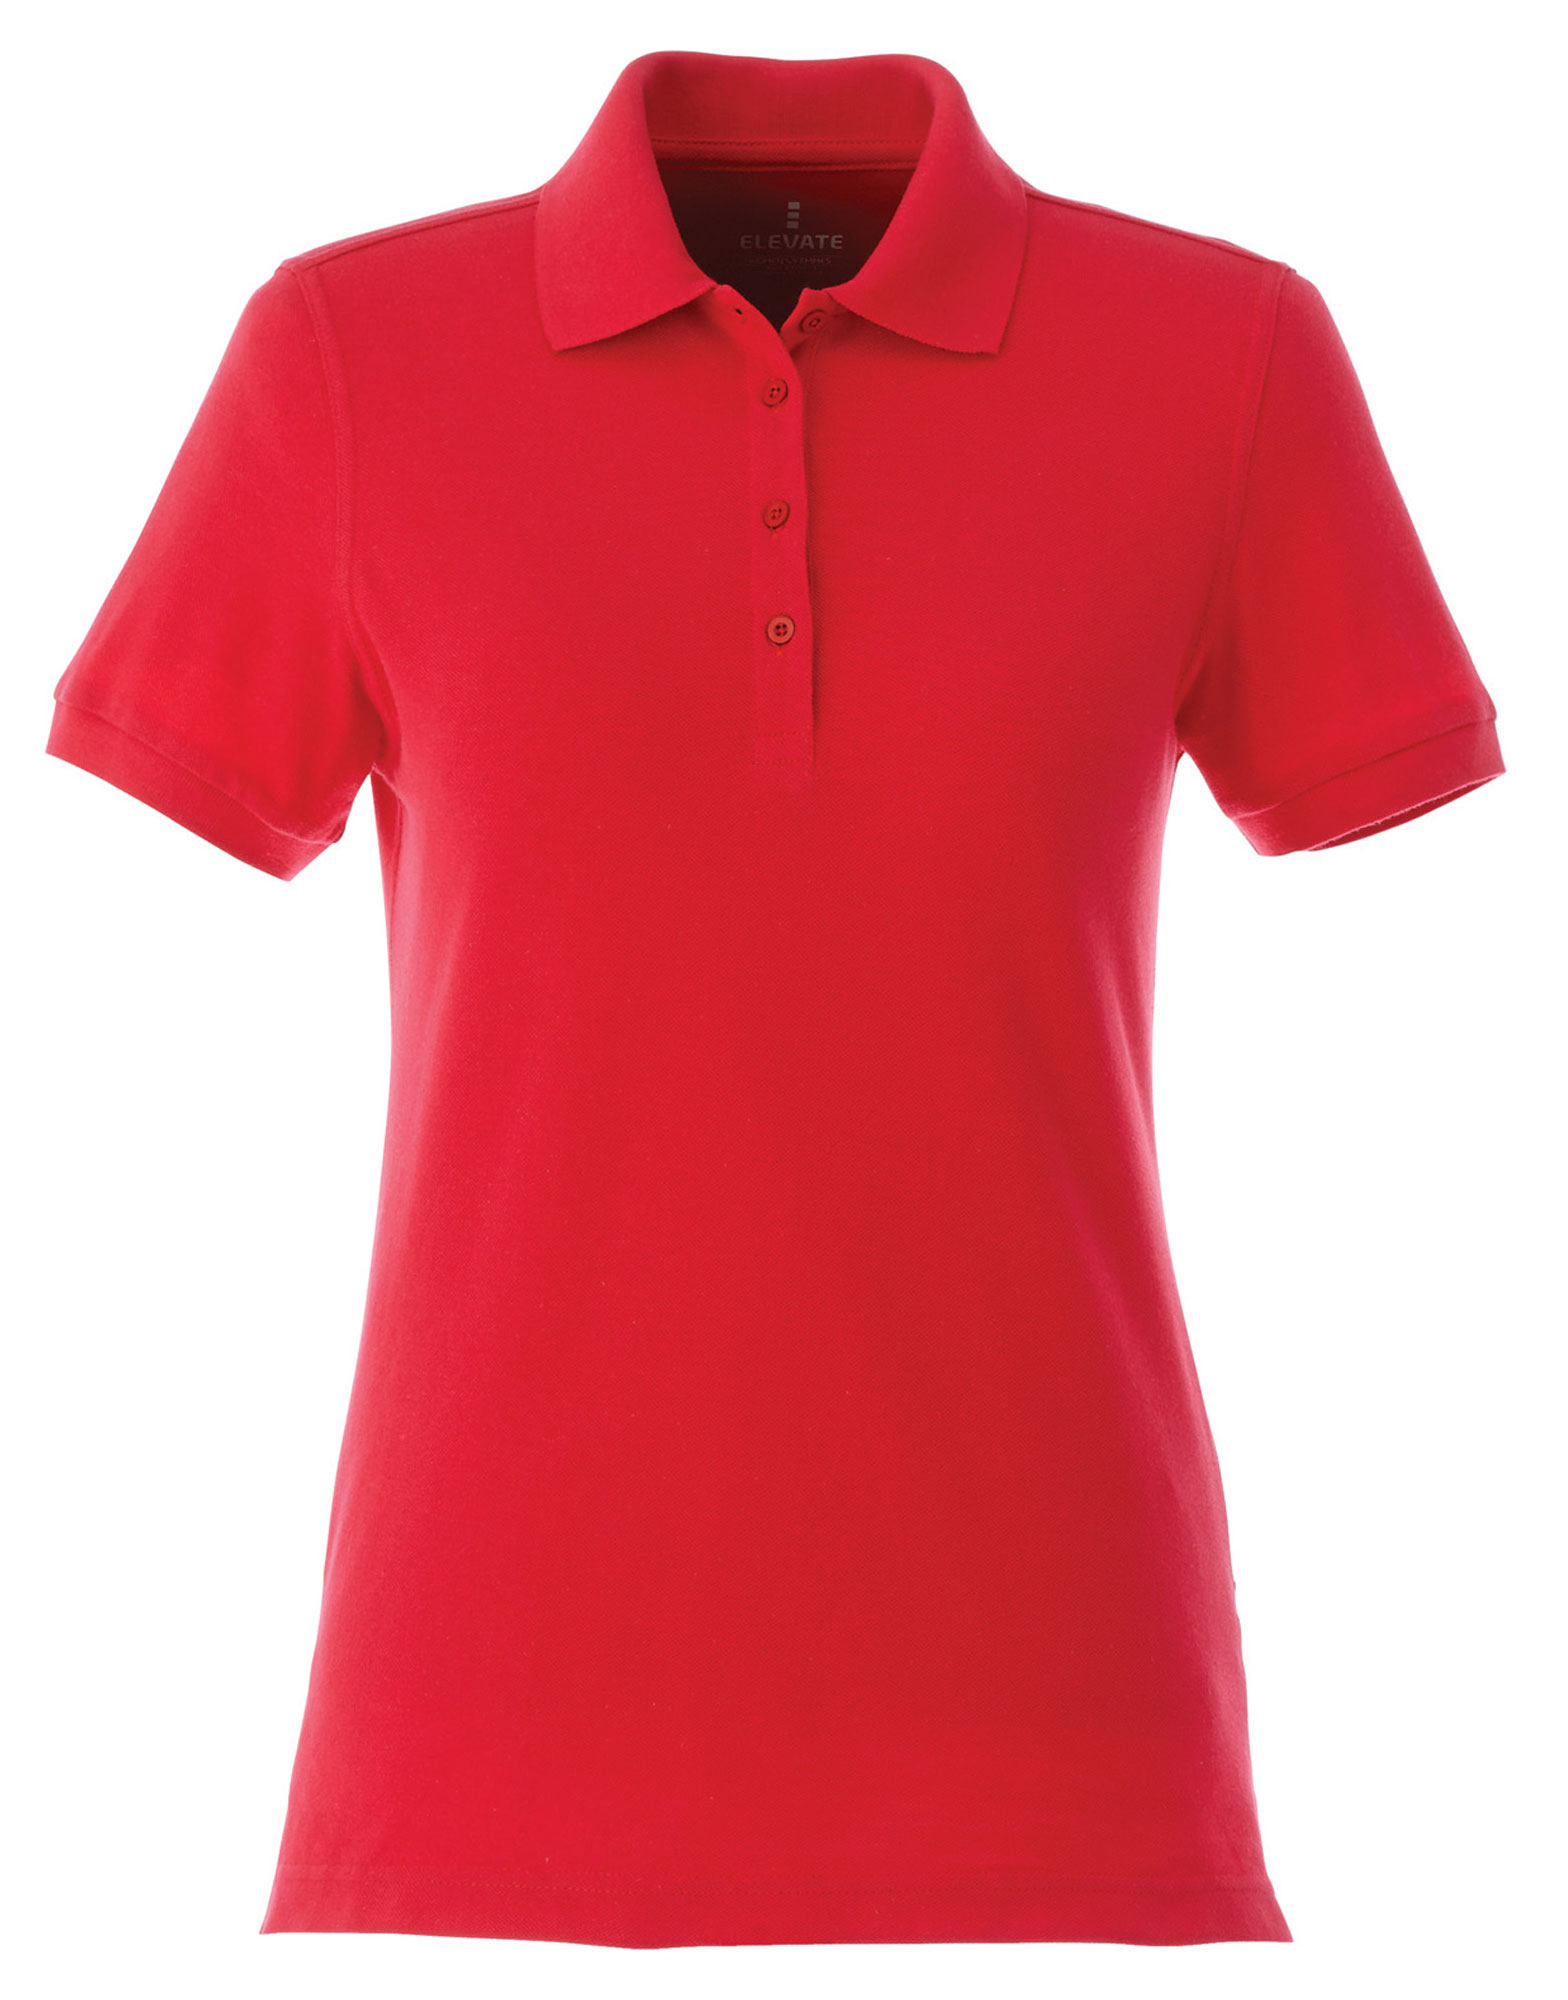 Trimark Womens Belmont Short Sleeve Polo